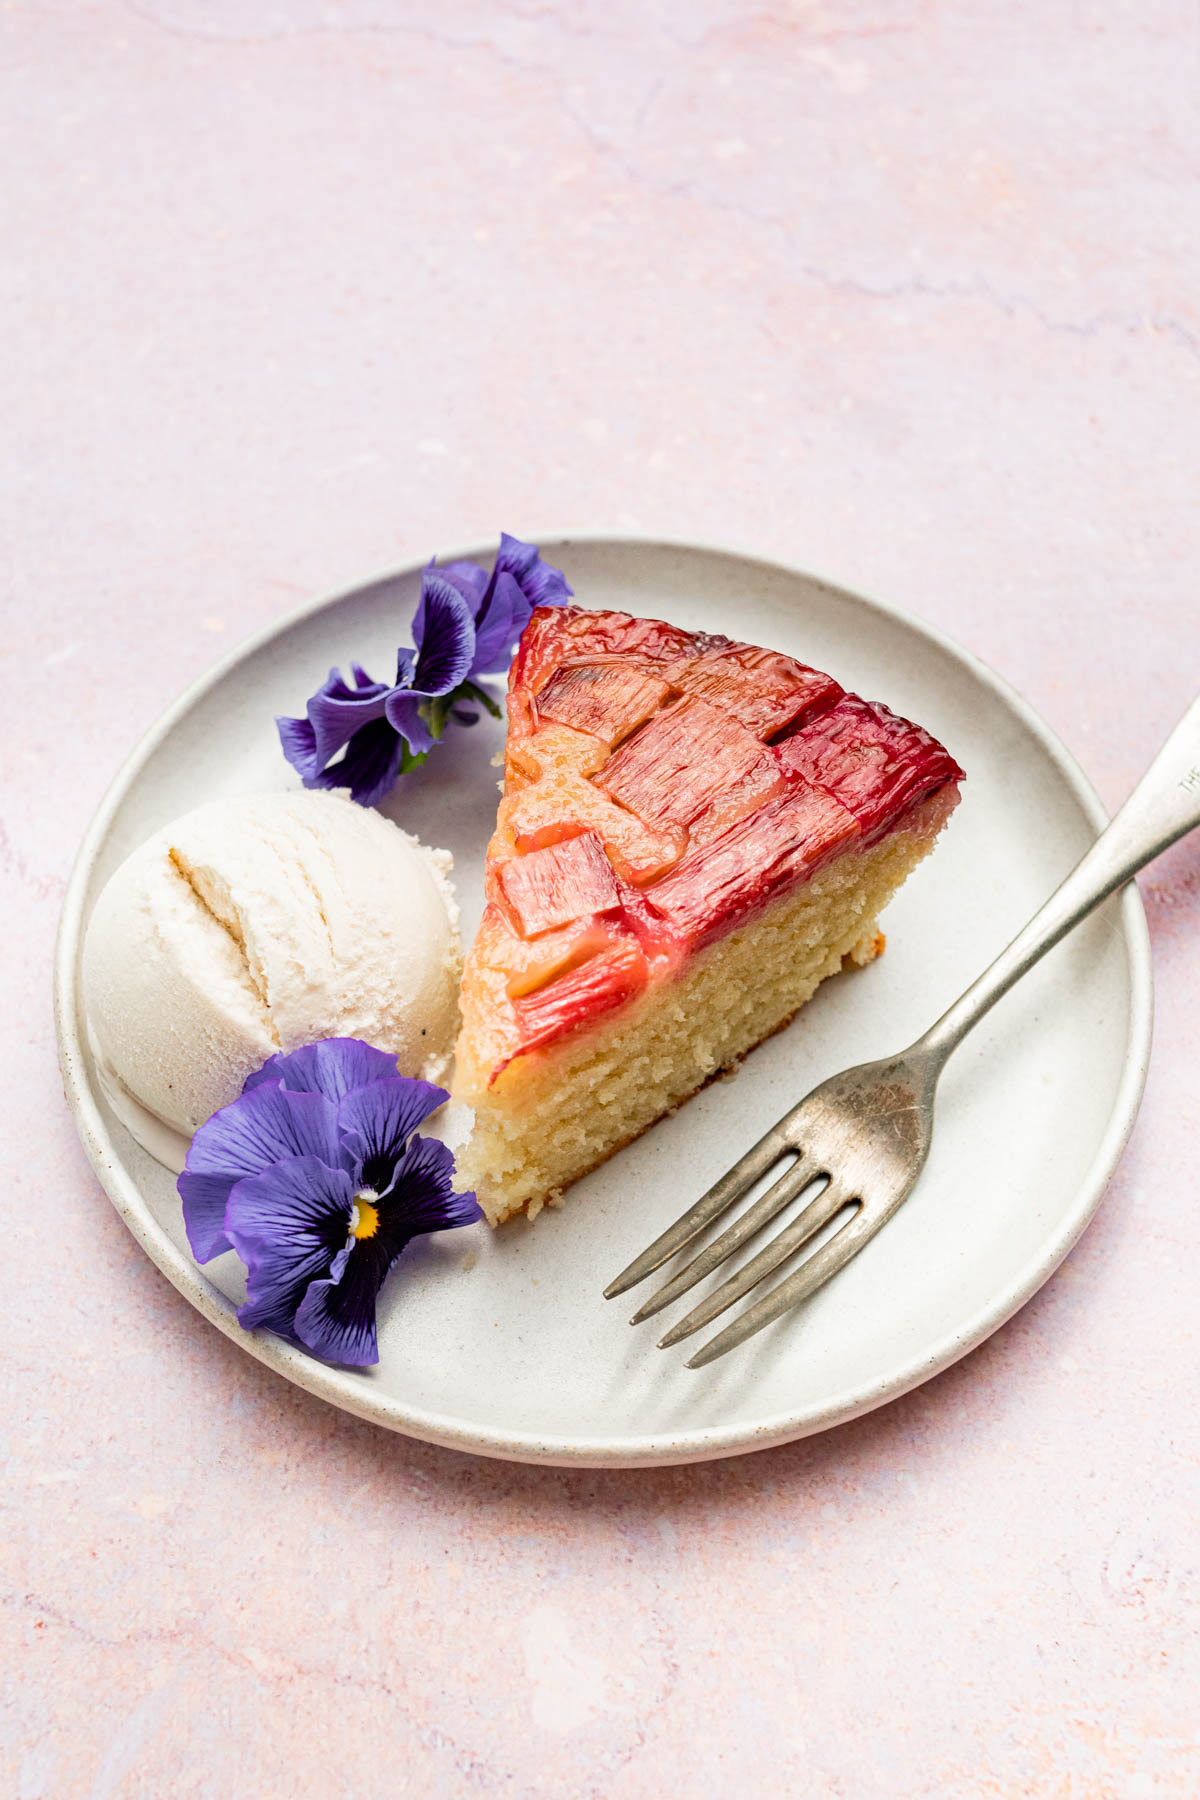 A slice of cake with ice cream and flowers.